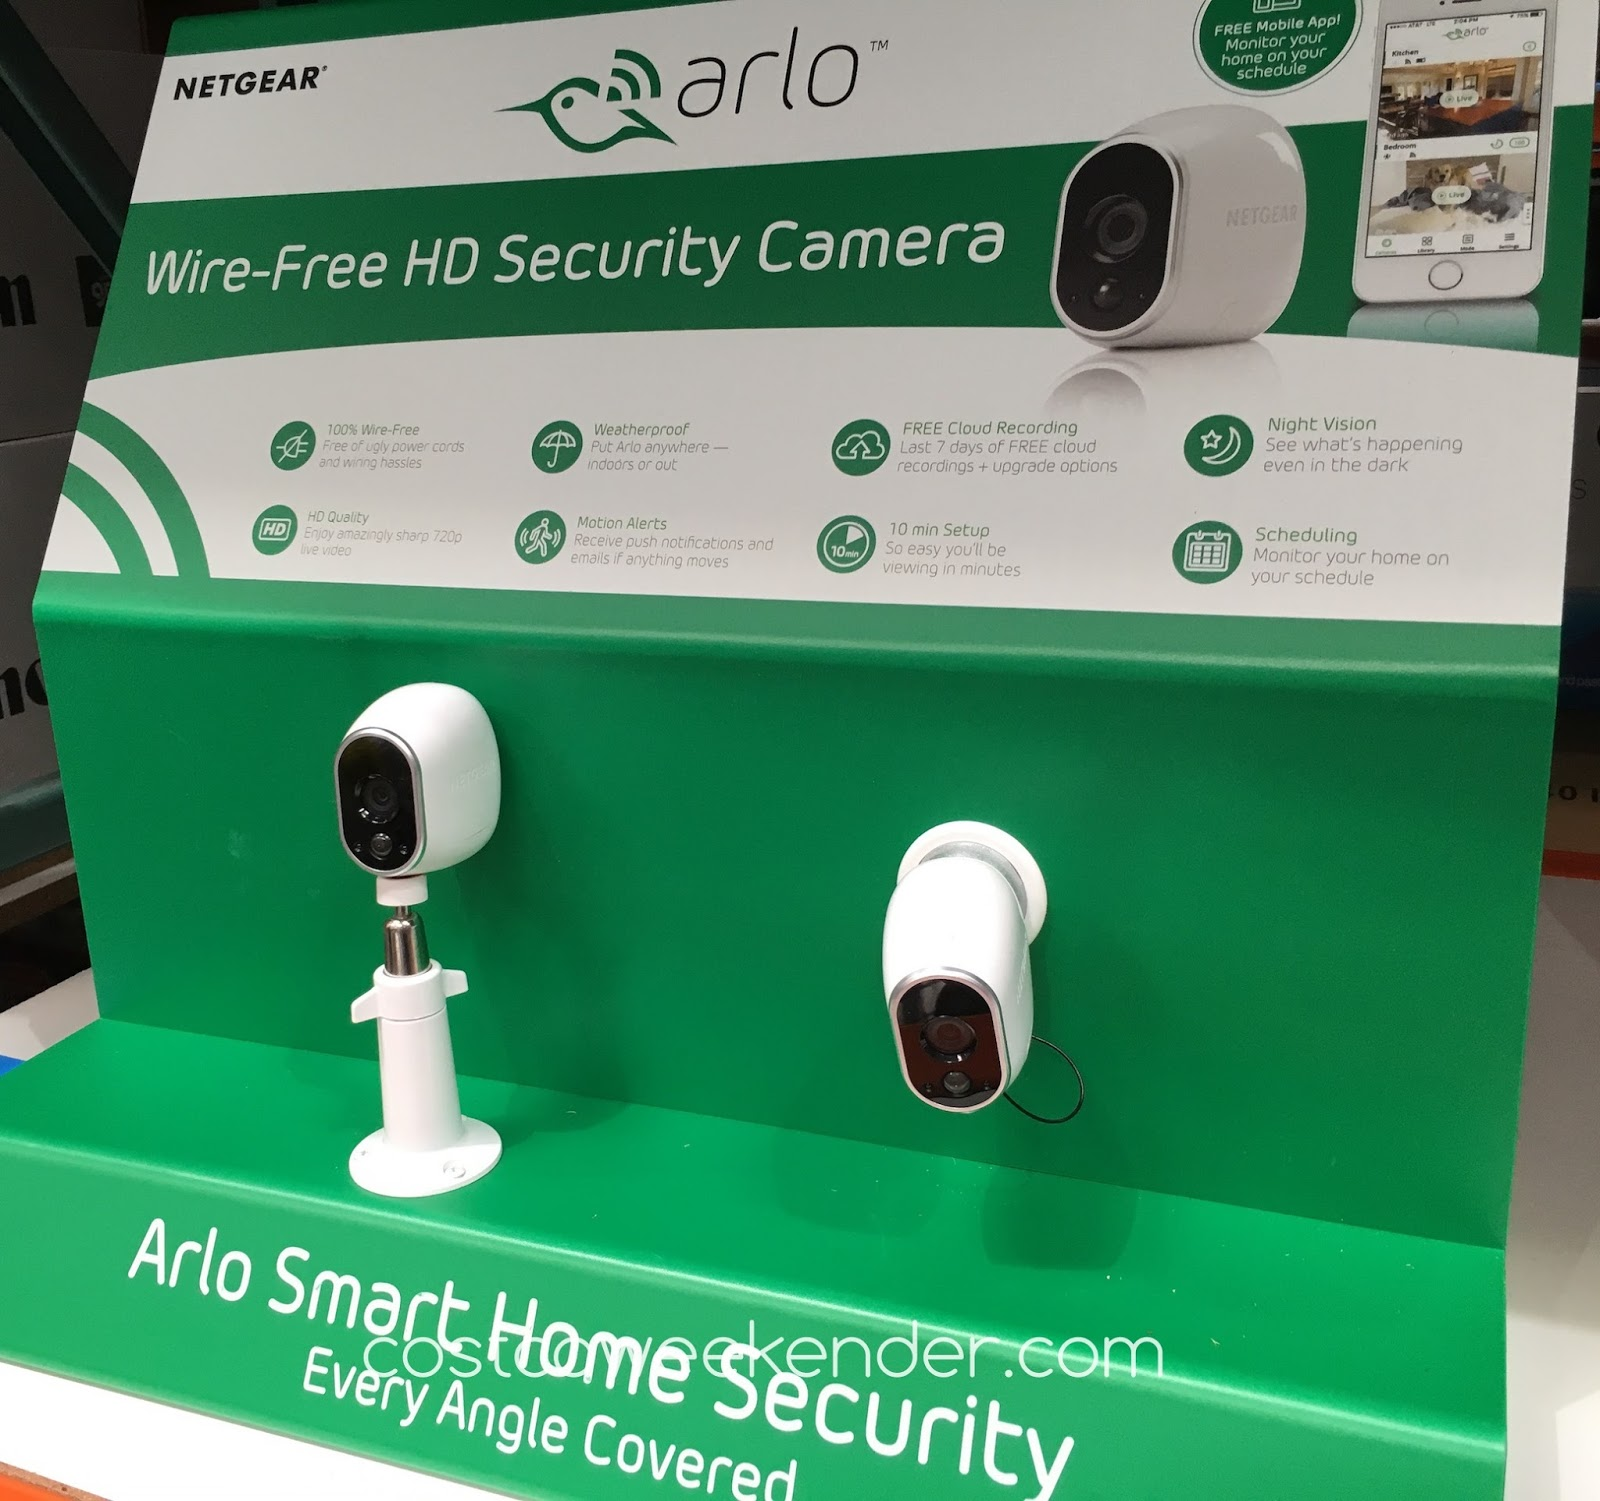 Camera Surveillance Exterieur Costco Netgear Arlo Vms3230c Wire Free Security Cameras Costco